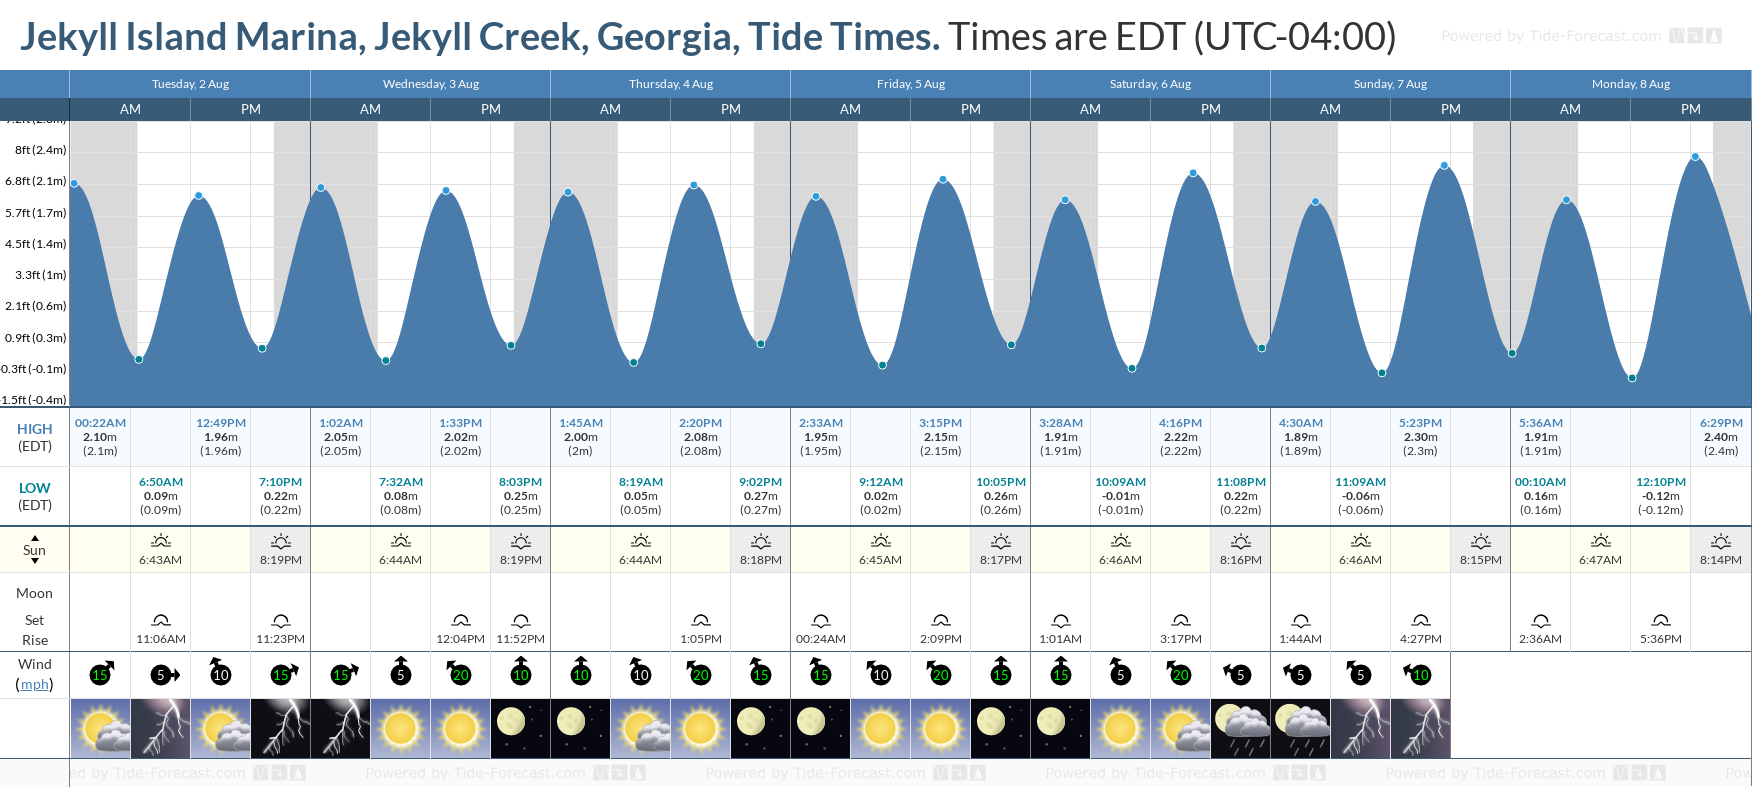 Jekyll Island Marina, Jekyll Creek, Georgia Tide Chart including high and low tide tide times for the next 7 days